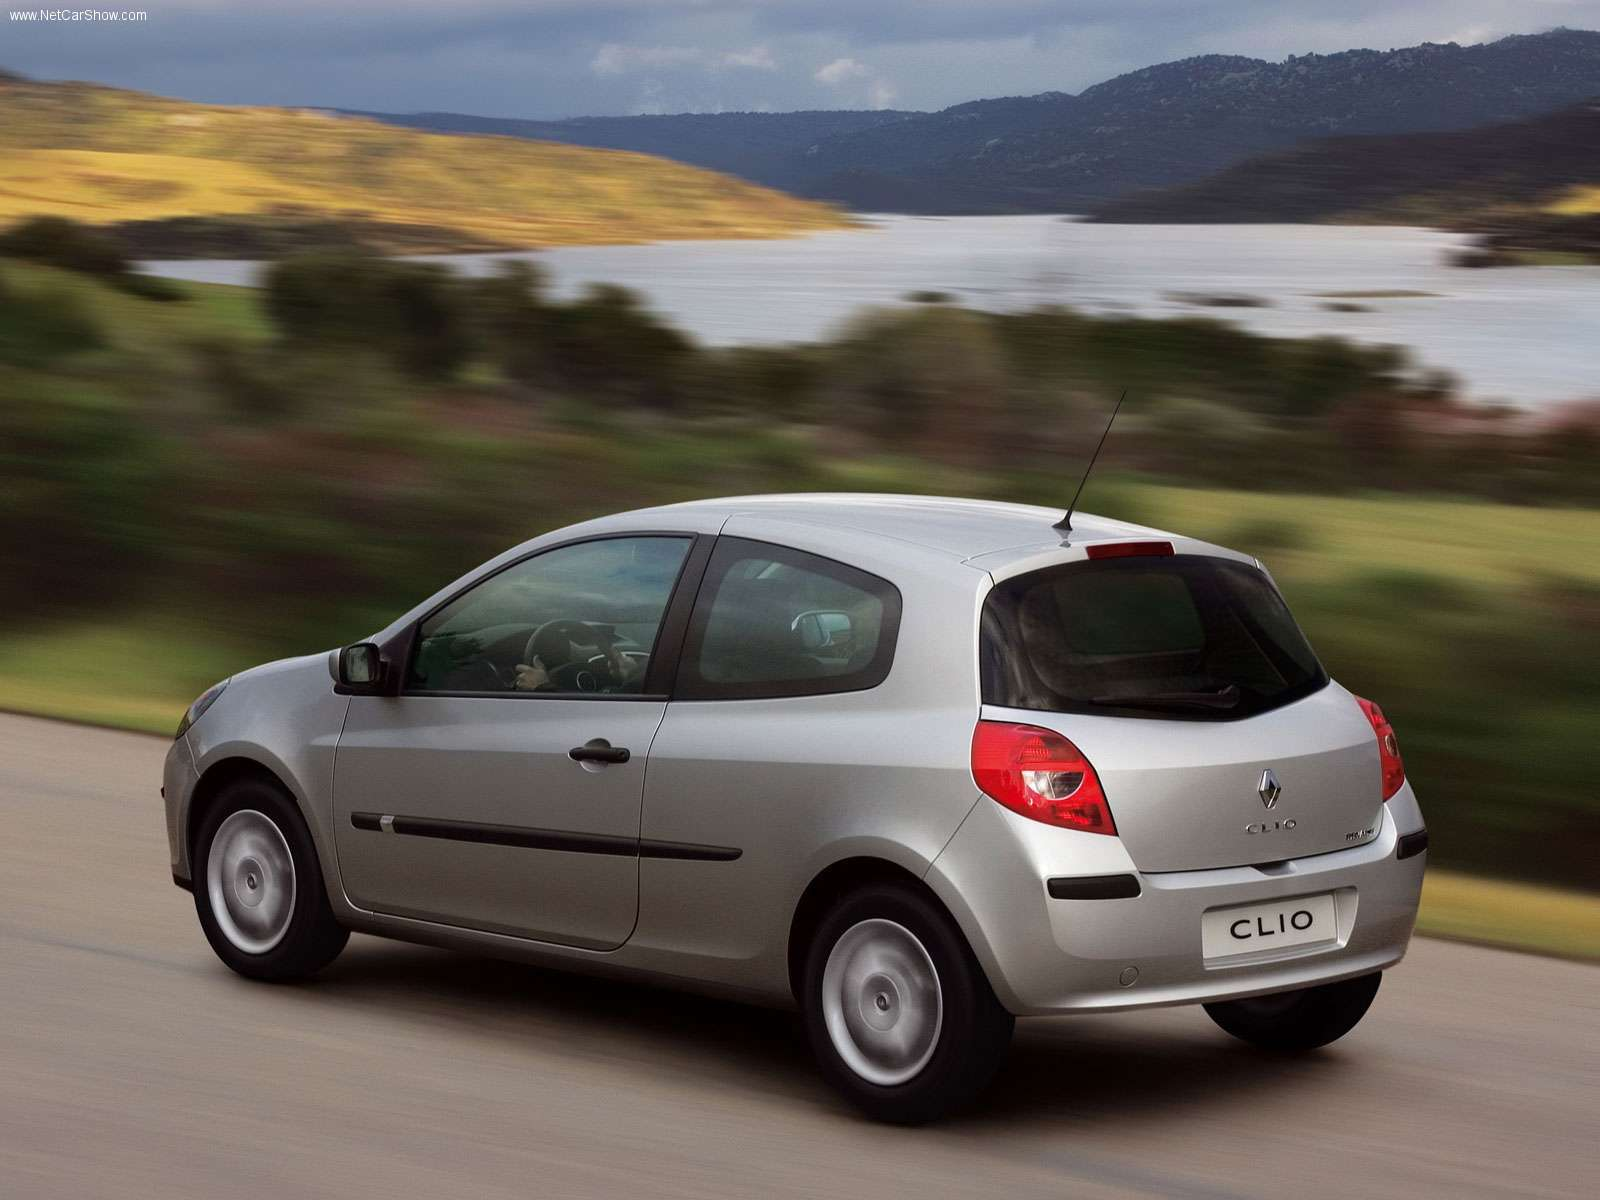 Renault Clio 3 Door Hatchback 2008